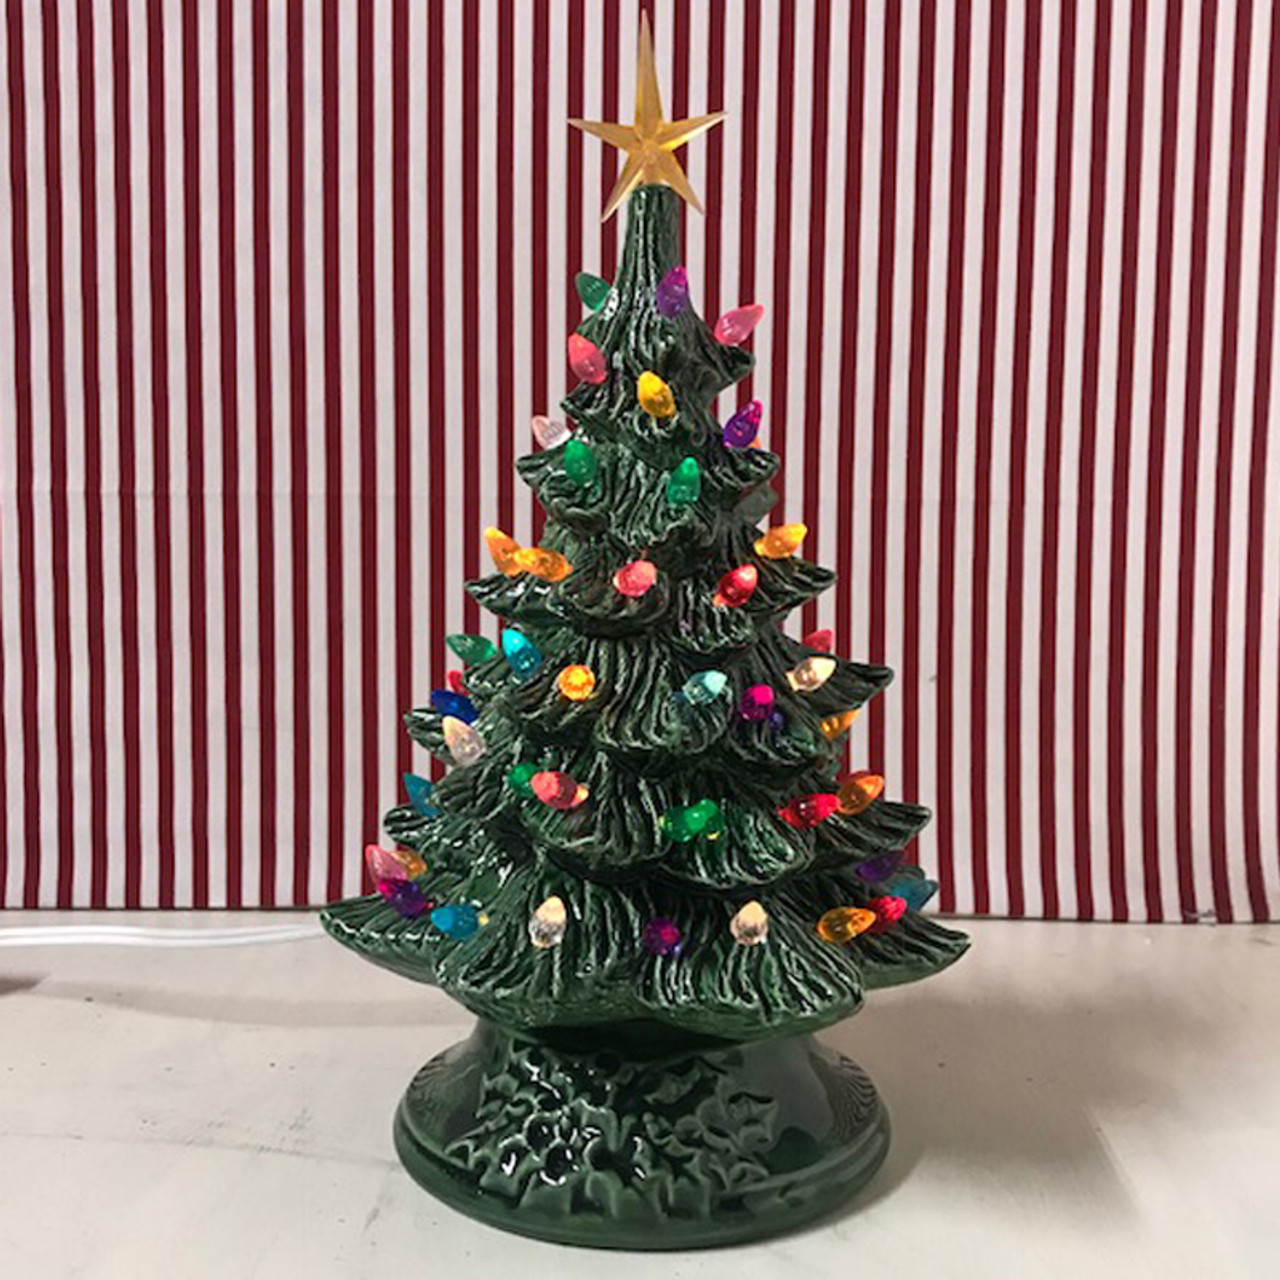 Small Lighted Green Ceramic Christmas Tree 12""